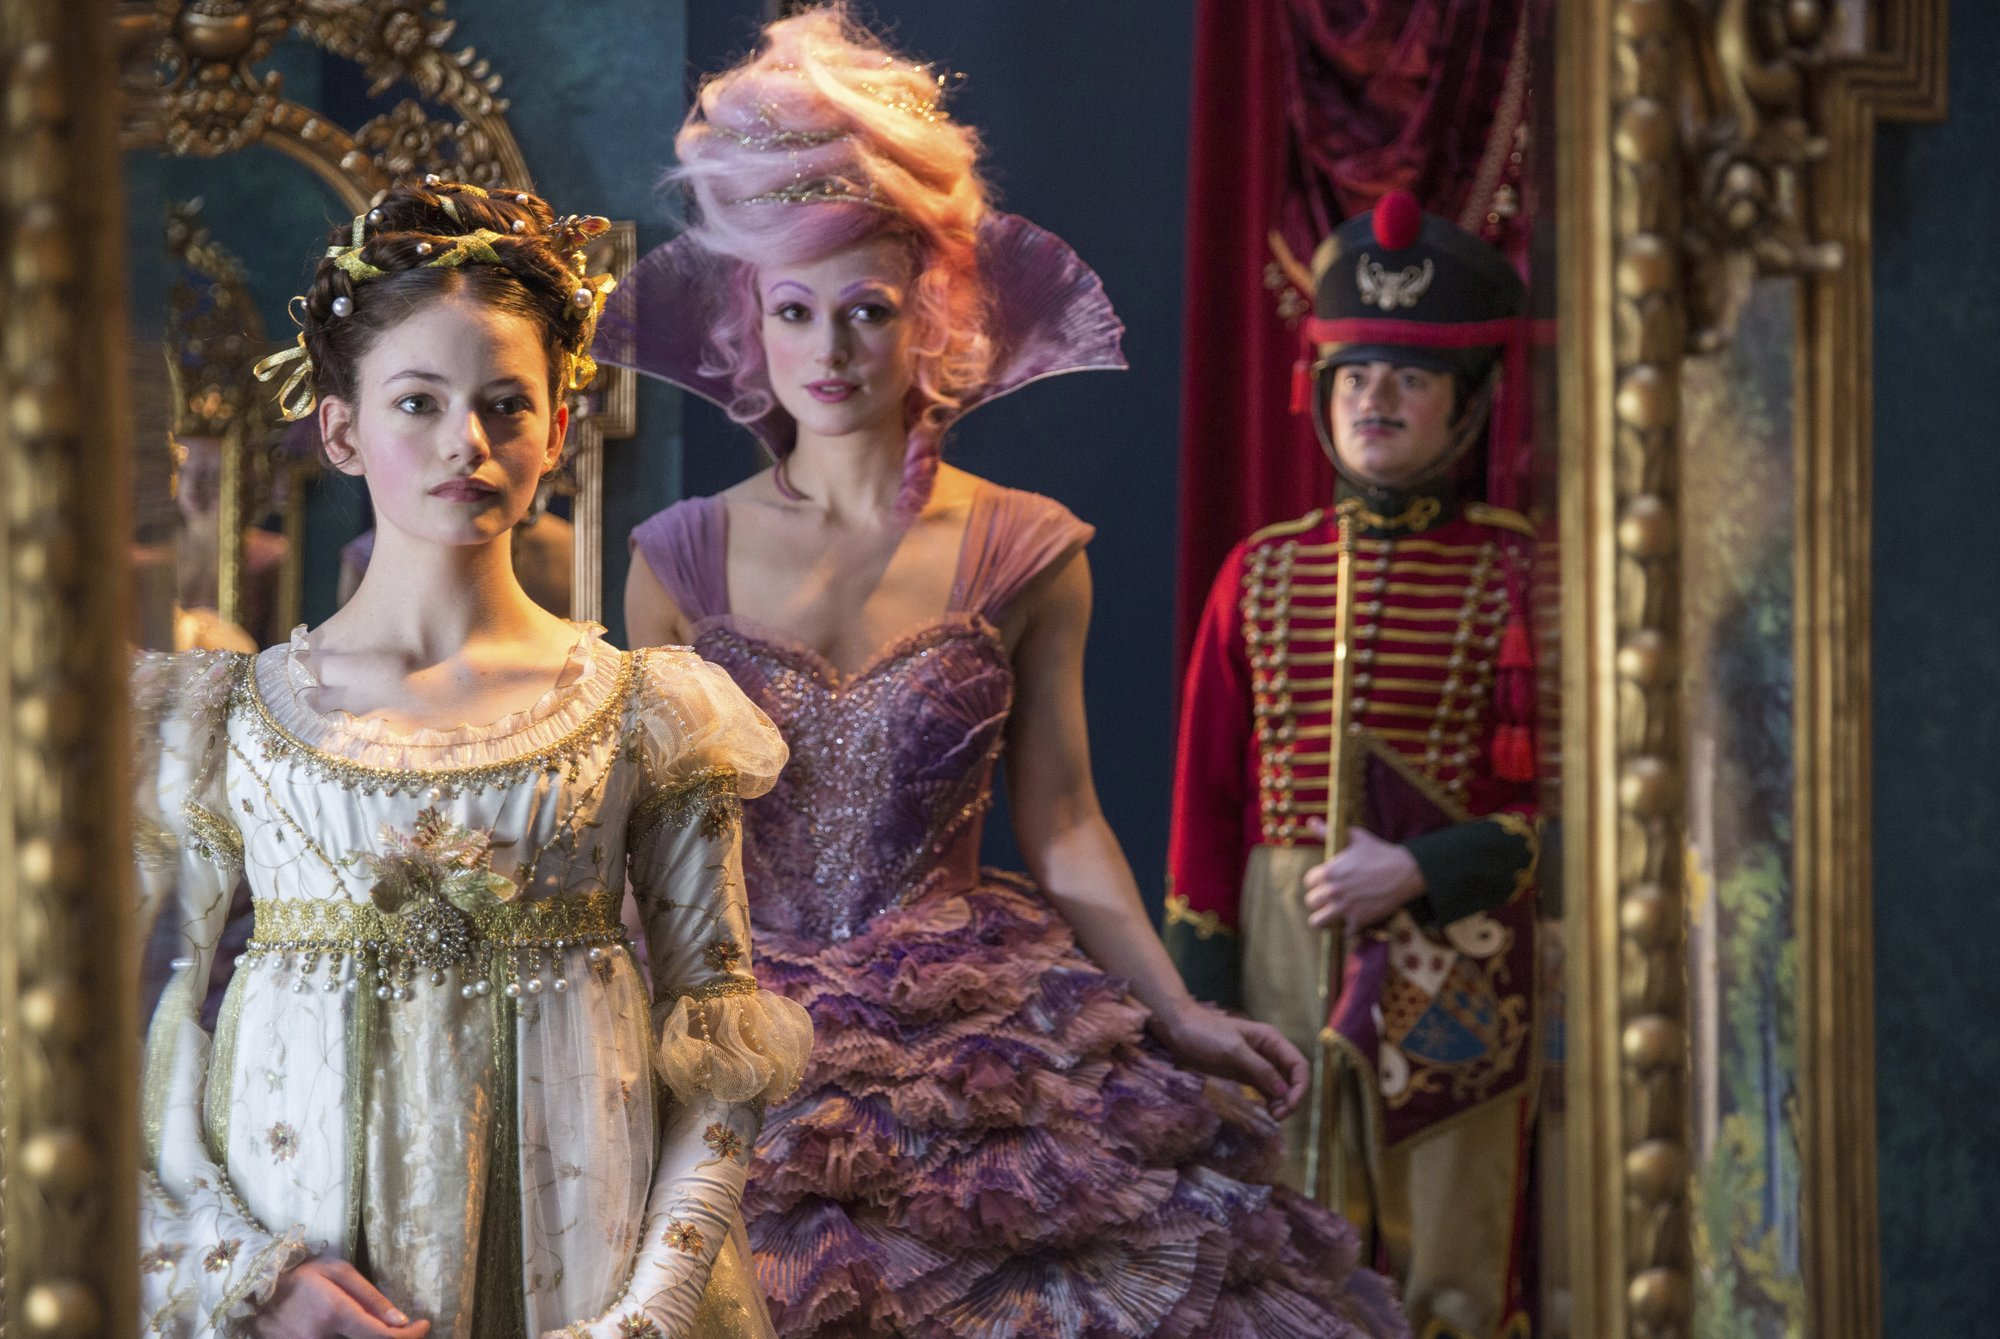 """Brave Nutcracker."" – The Nutcracker and the Four Realms"